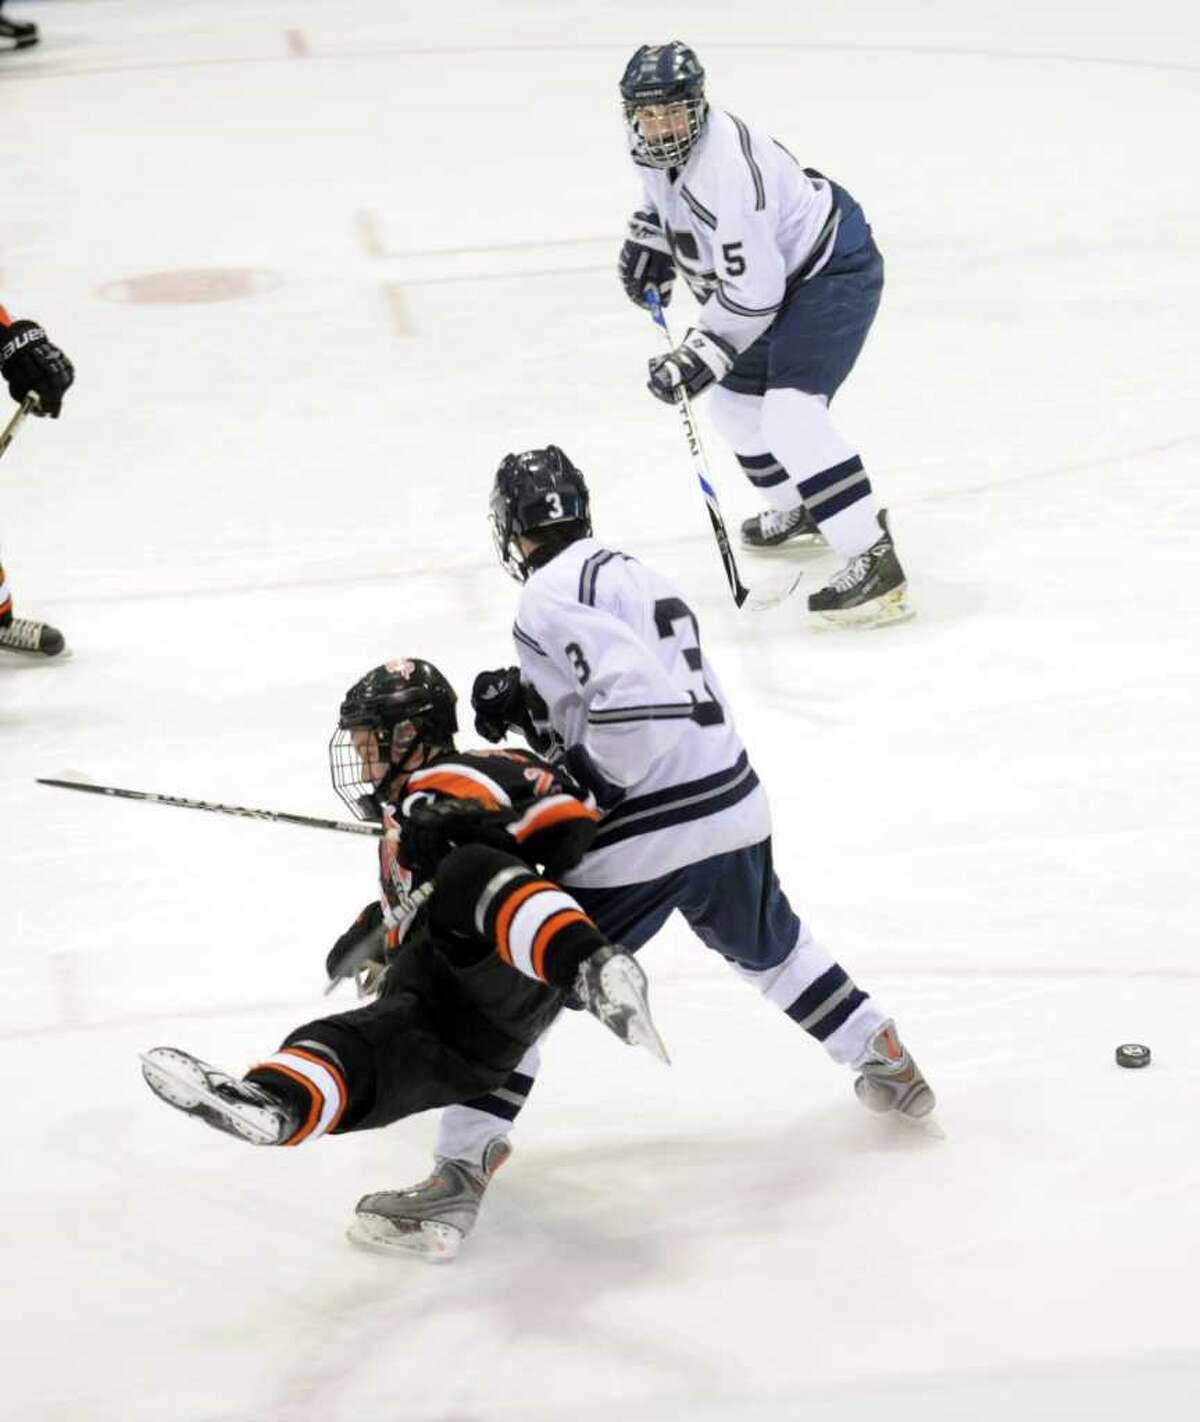 Watertown-Pomperaug takes on Staples-Weston-Shelton in the Division III state playoff game at Yale University's Ingalls Rink Saturday, Mar. 19, 2011.